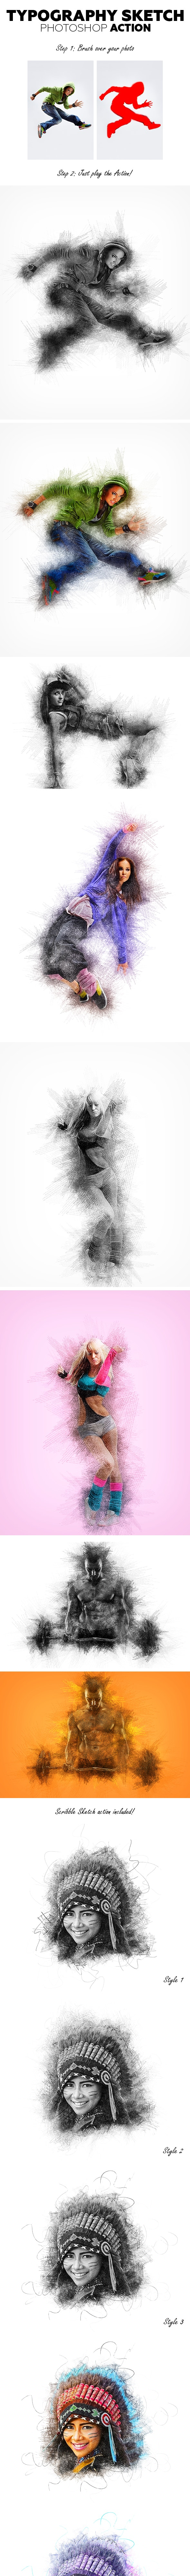 Typography Sketch Photoshop Action - Photo Effects Actions